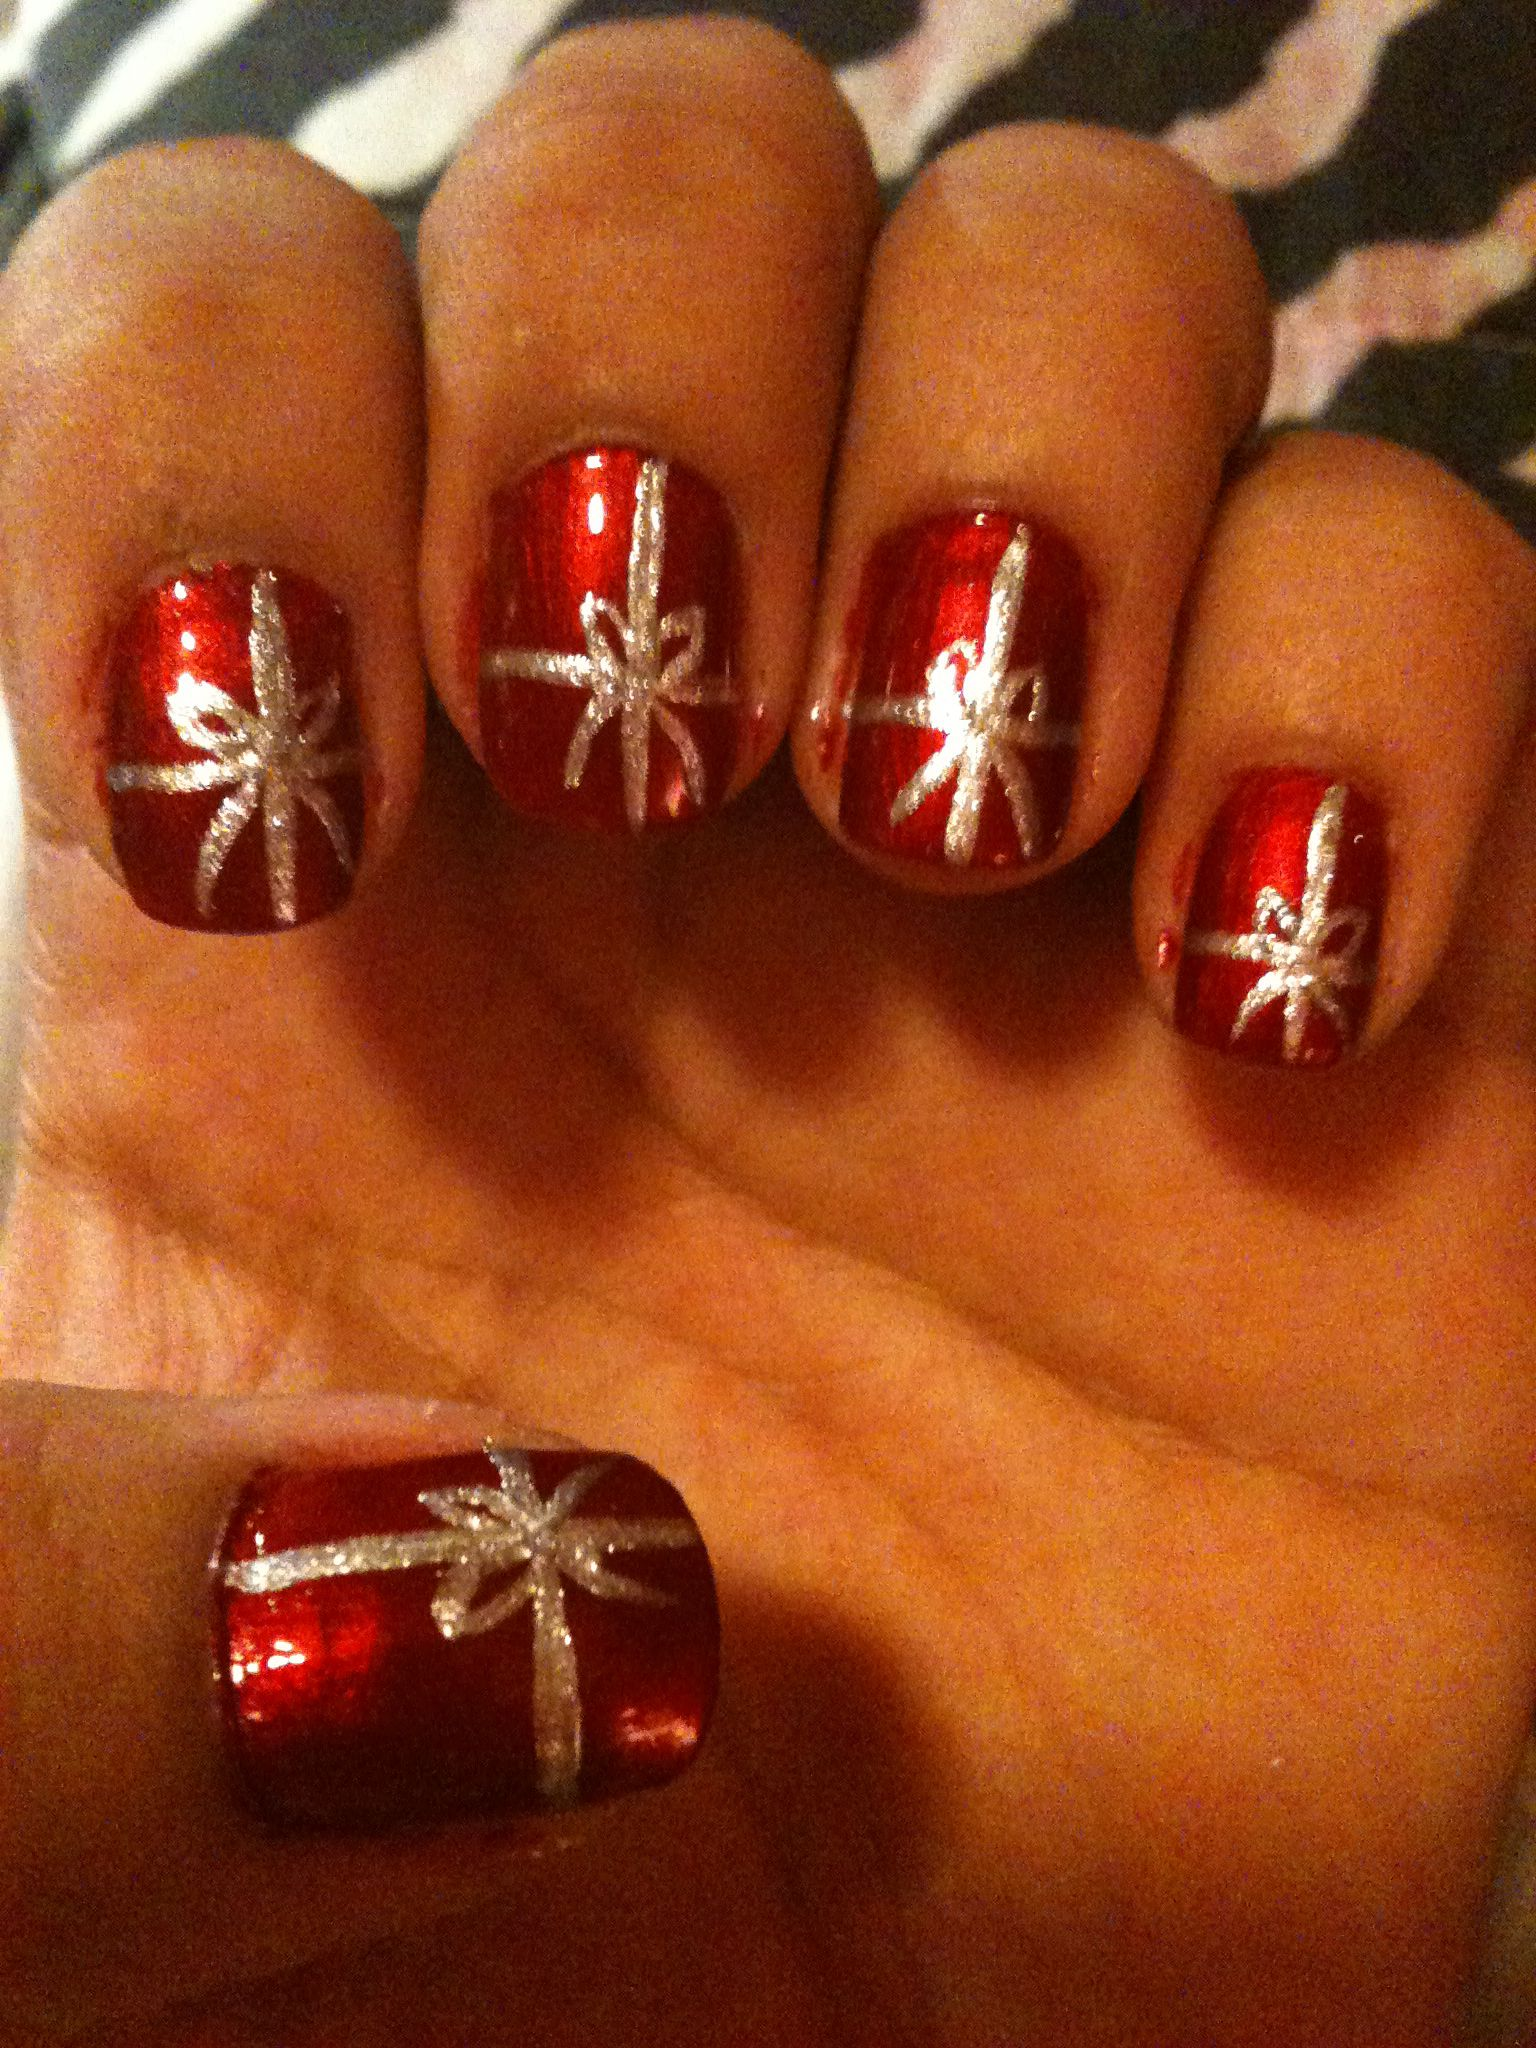 Christmas Present Nail Design A little sloppy and needed cleaned up